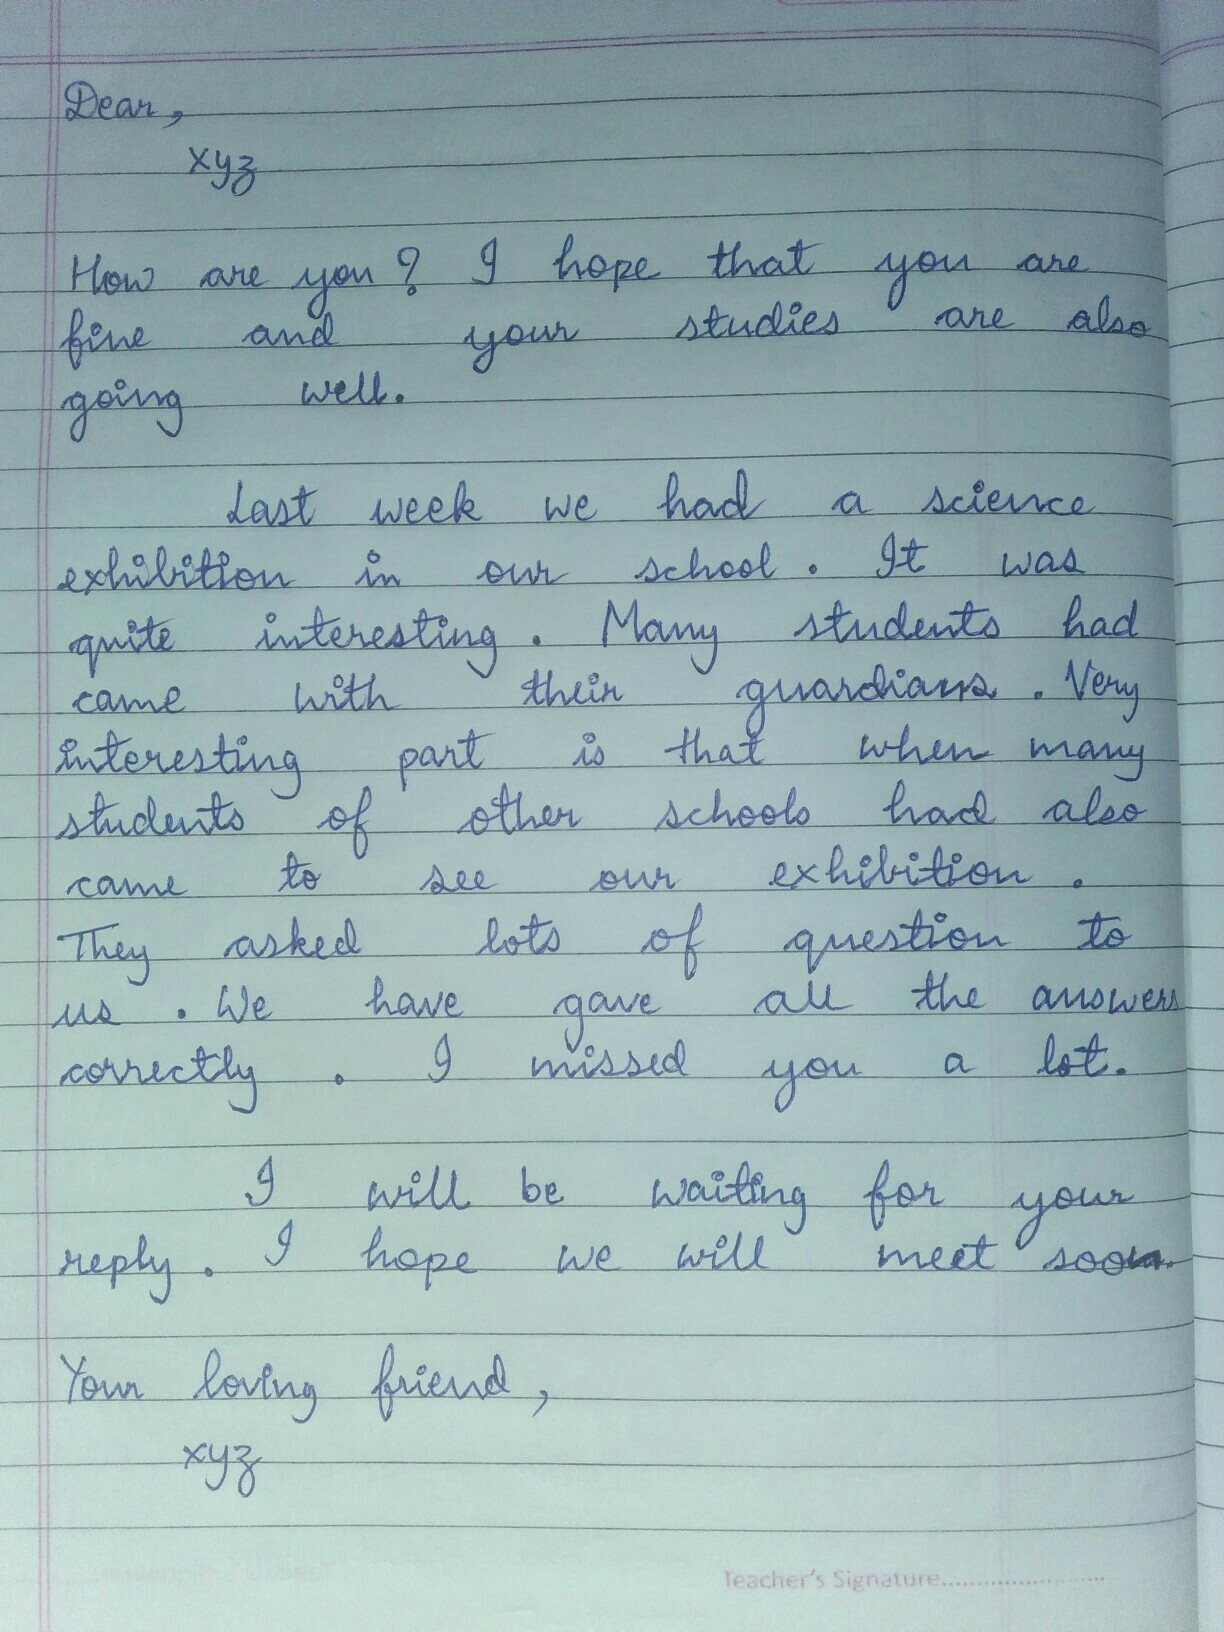 Write a letter to your friend telling him about an interesting